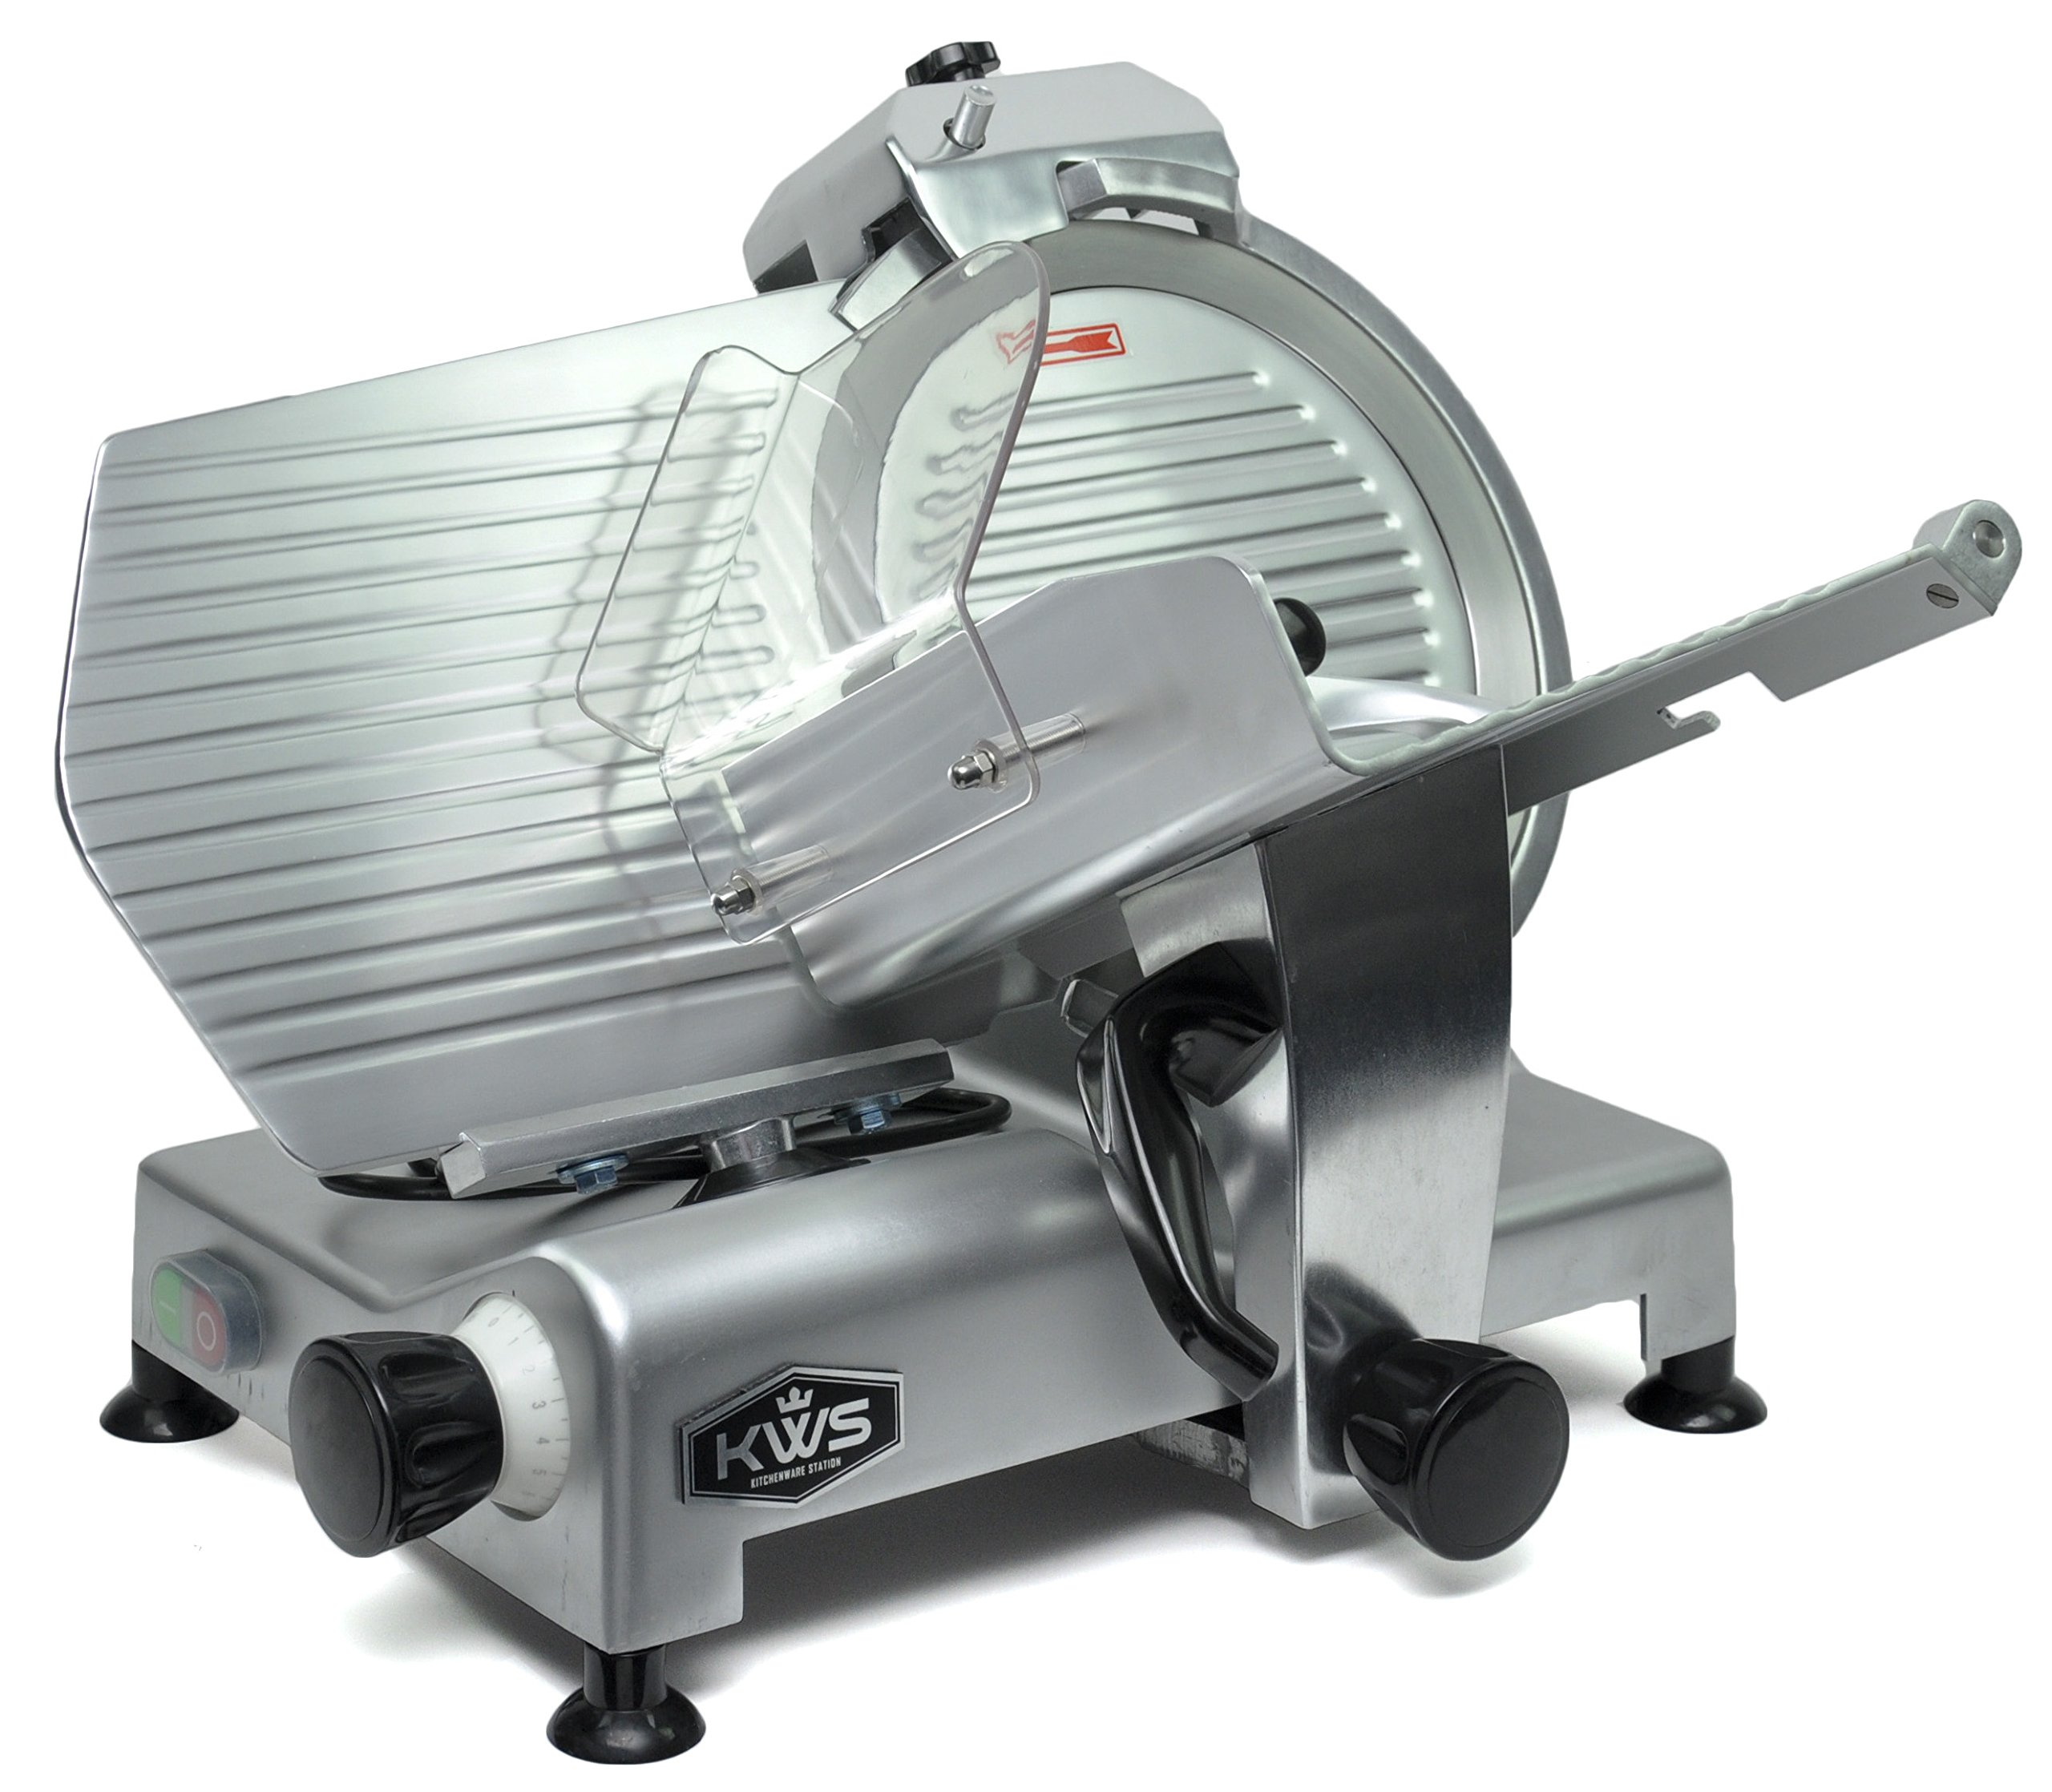 KWS Premium Commercial 420w Electric Meat Slicer 12'' Stainless Steel Blade, Frozen Meat/ Cheese/ Food Slicer Low Noises